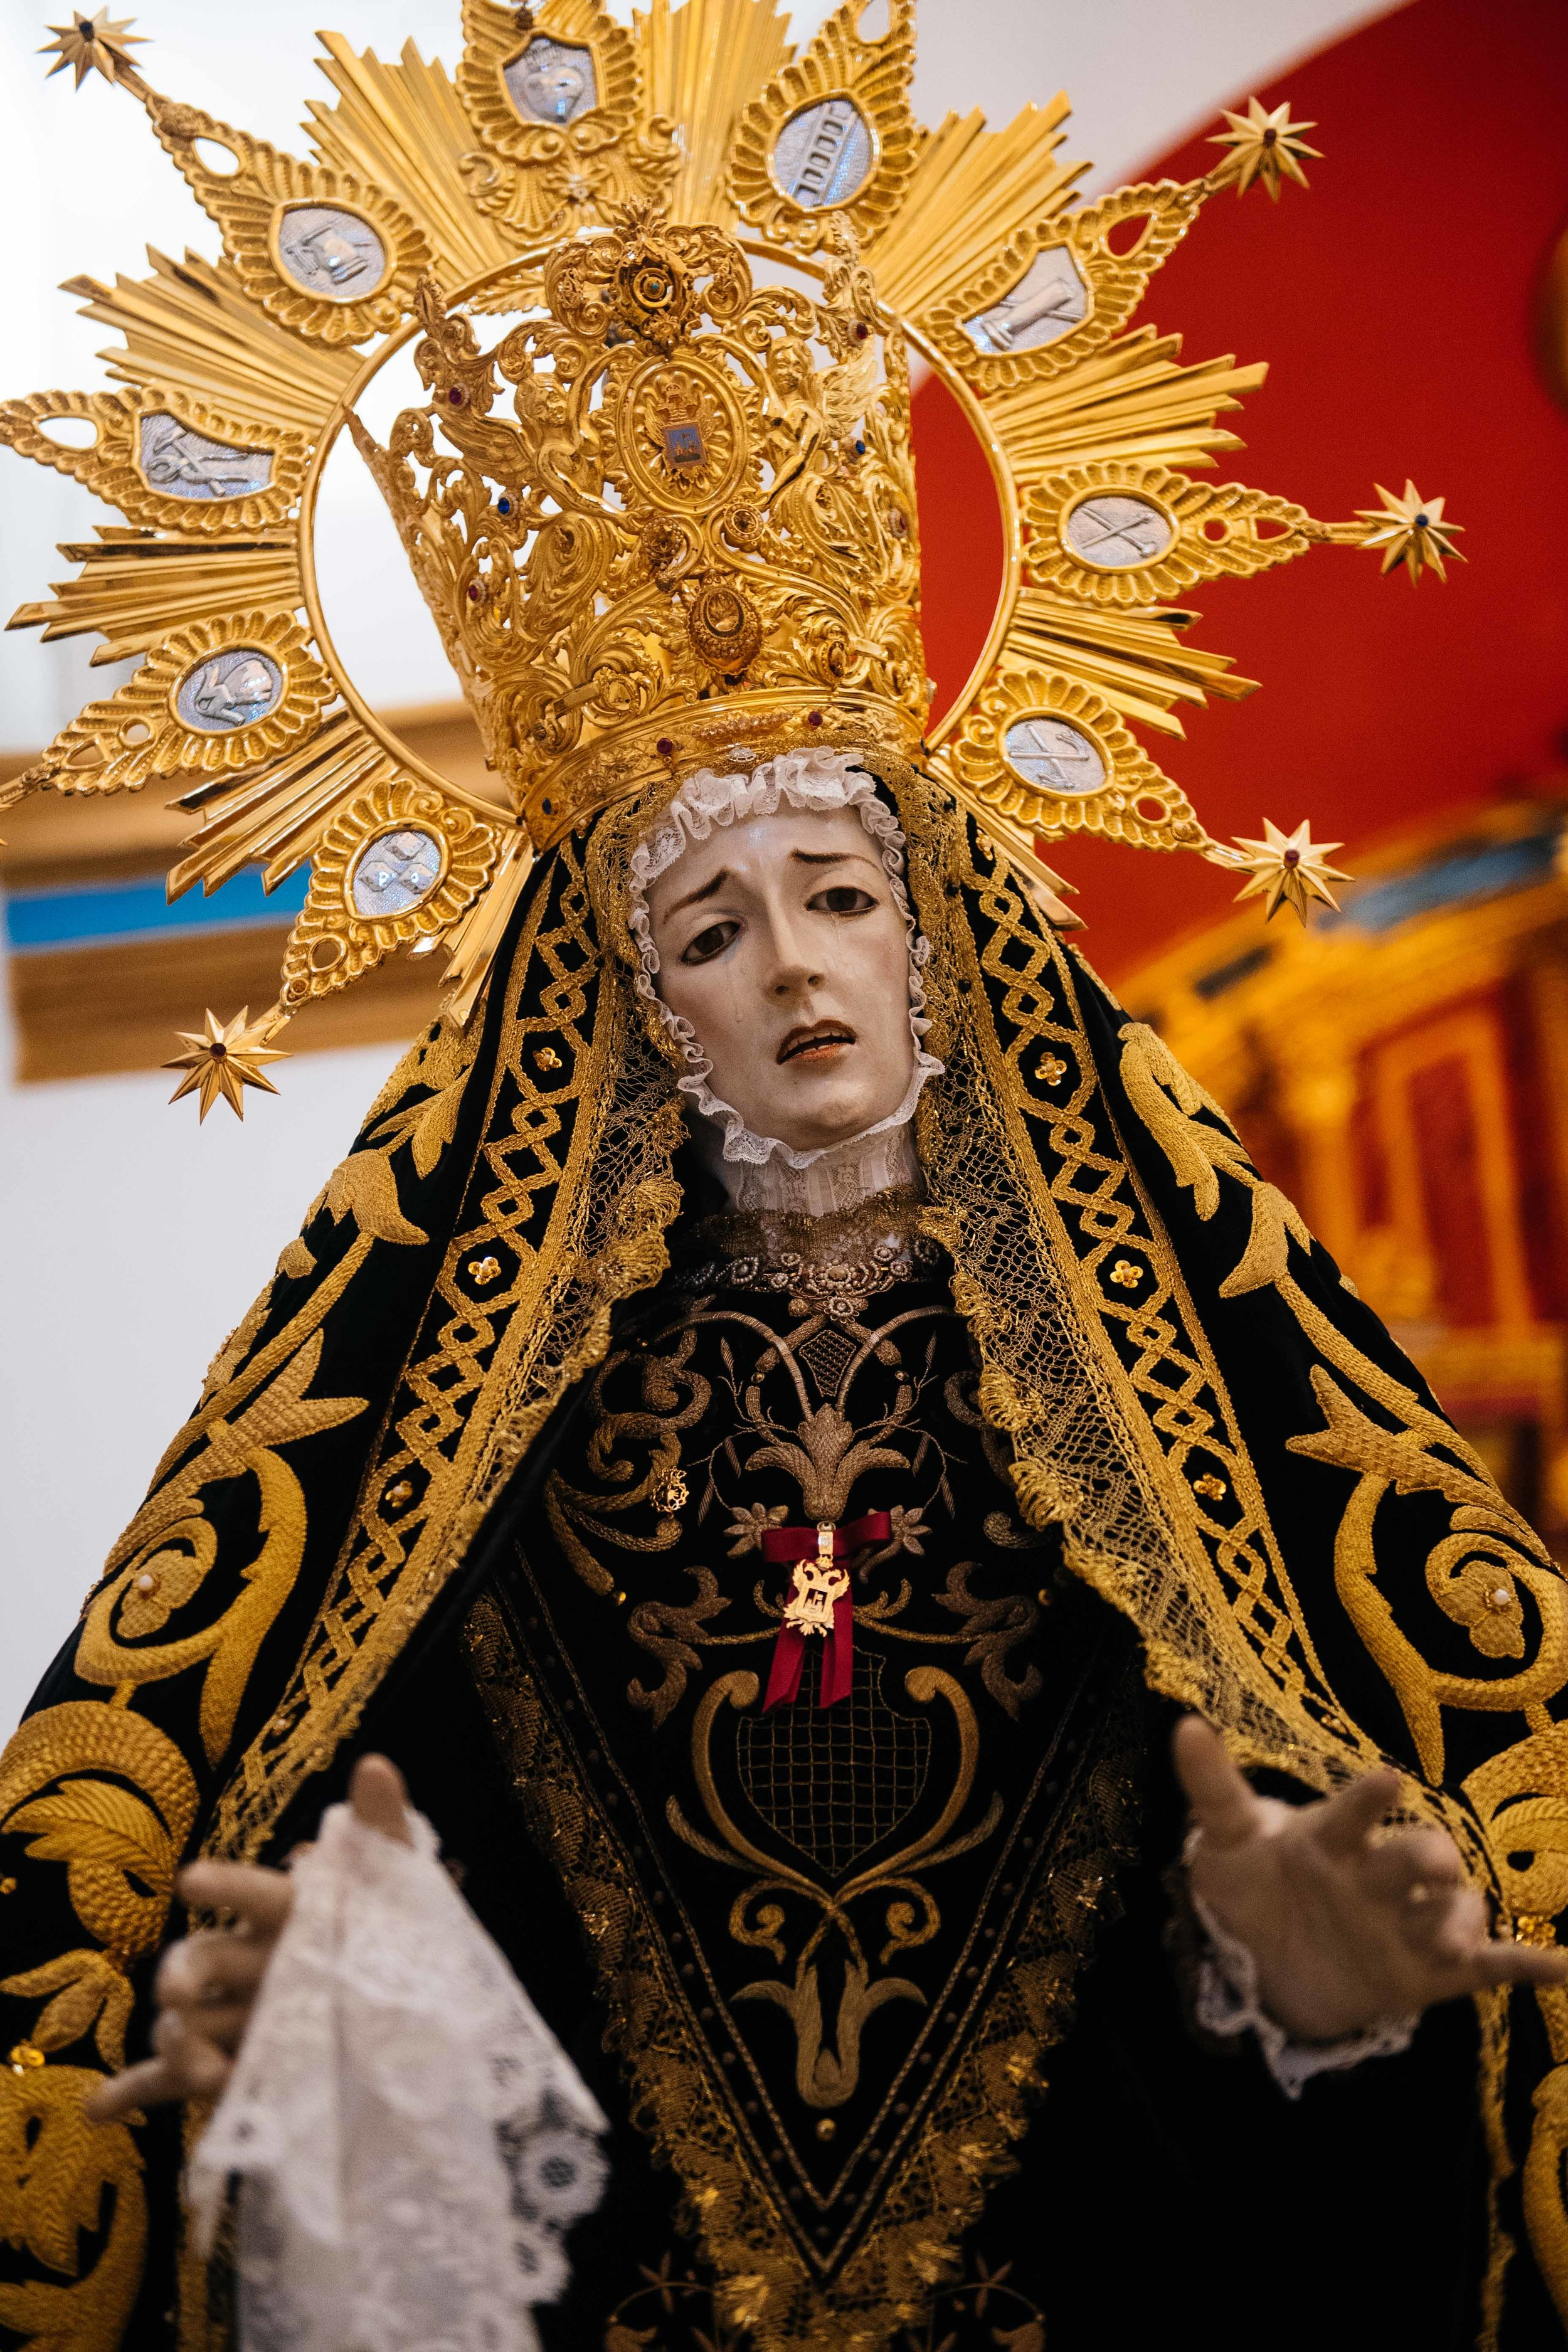 Statue of Our Lady of Anguish has been part of the Vera procession since 1680.